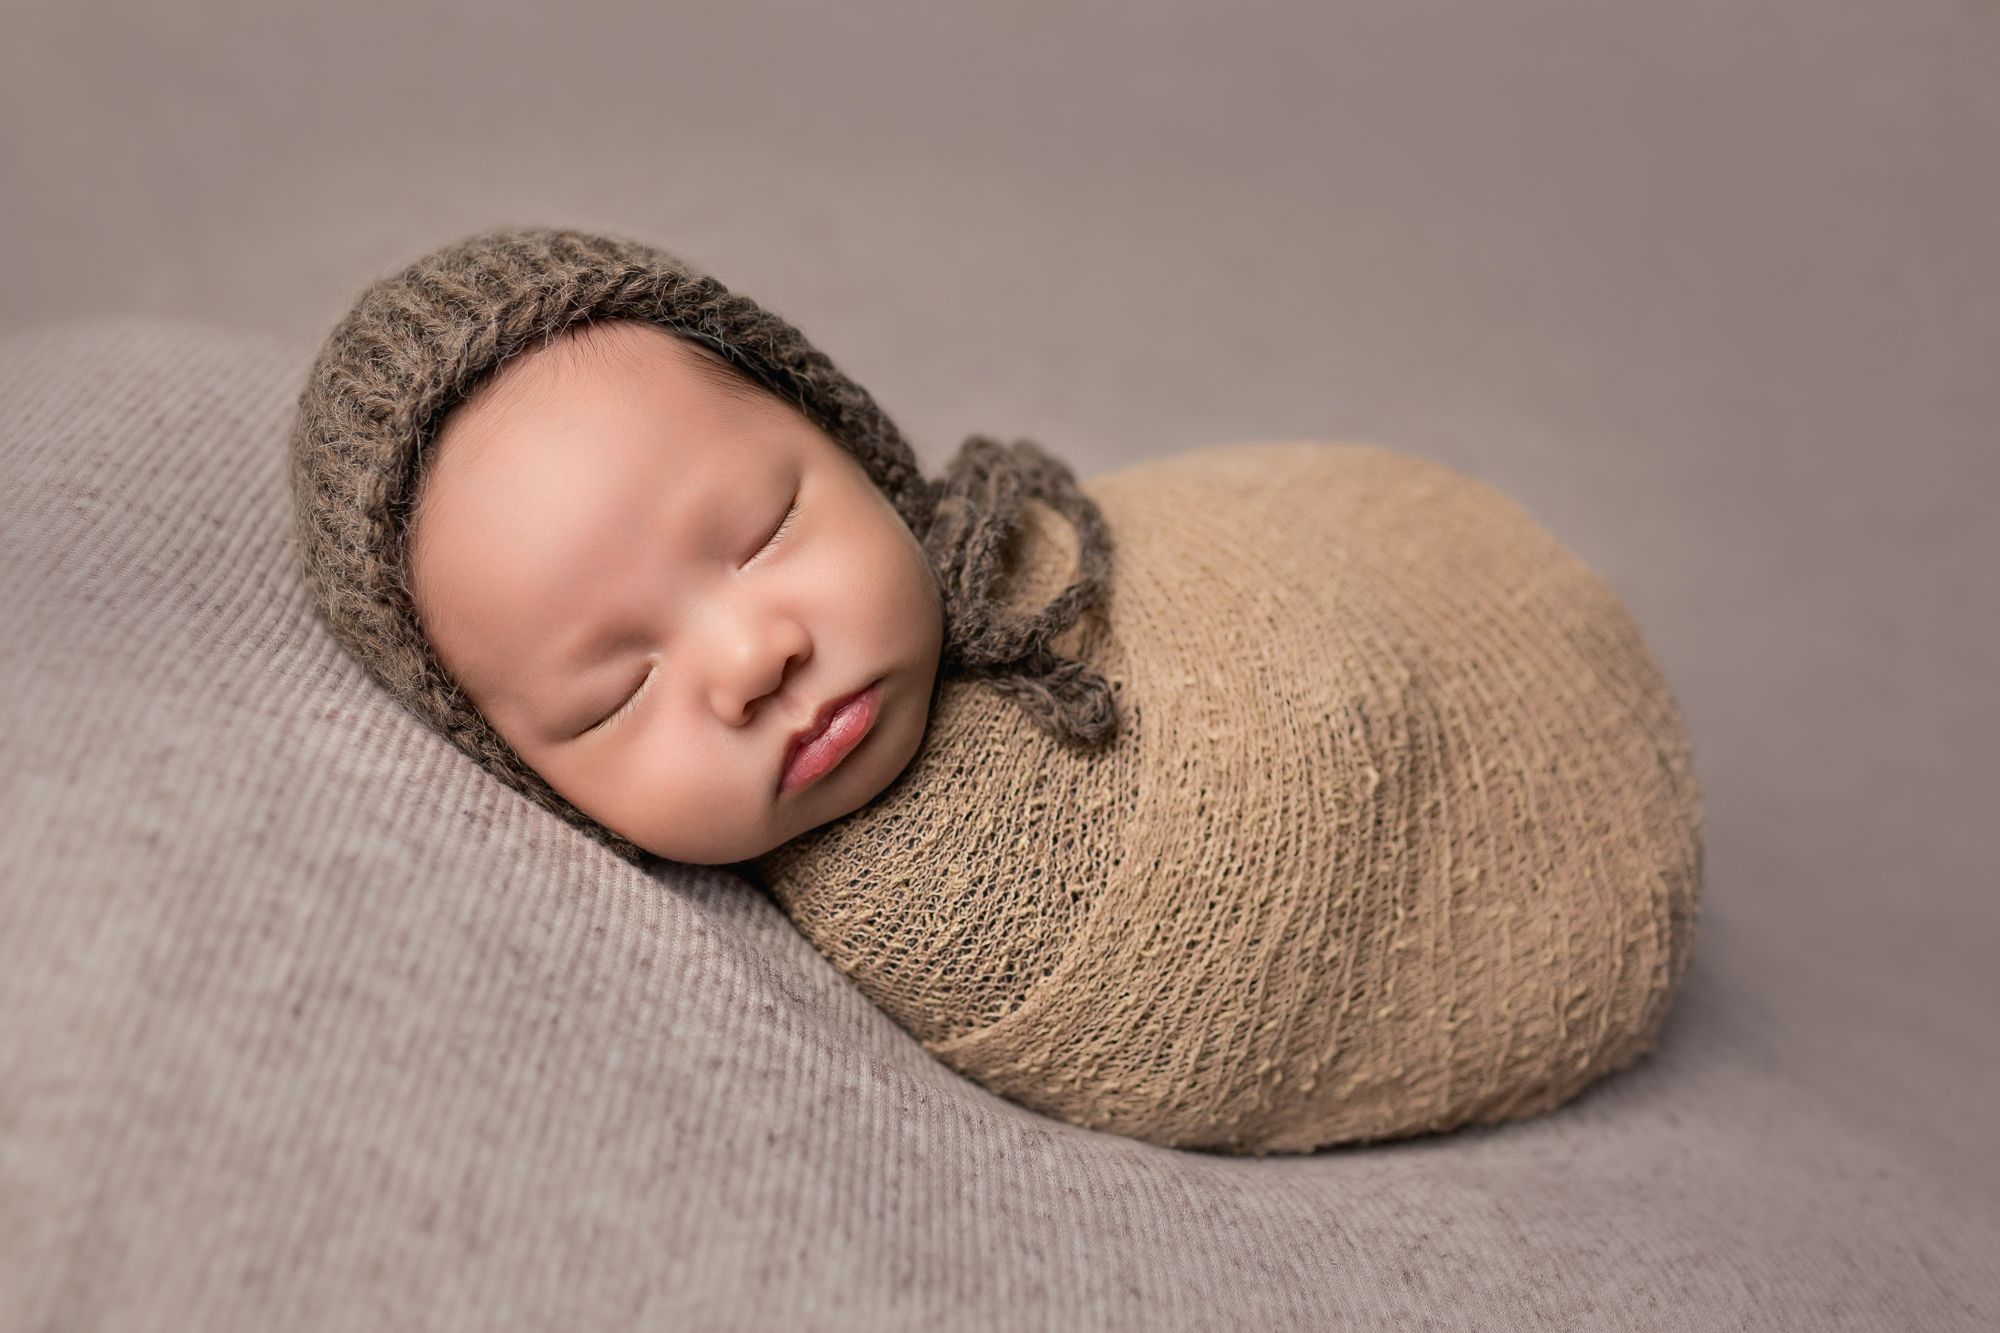 Newborn Photographer in San Diego captures beautiful baby pictures